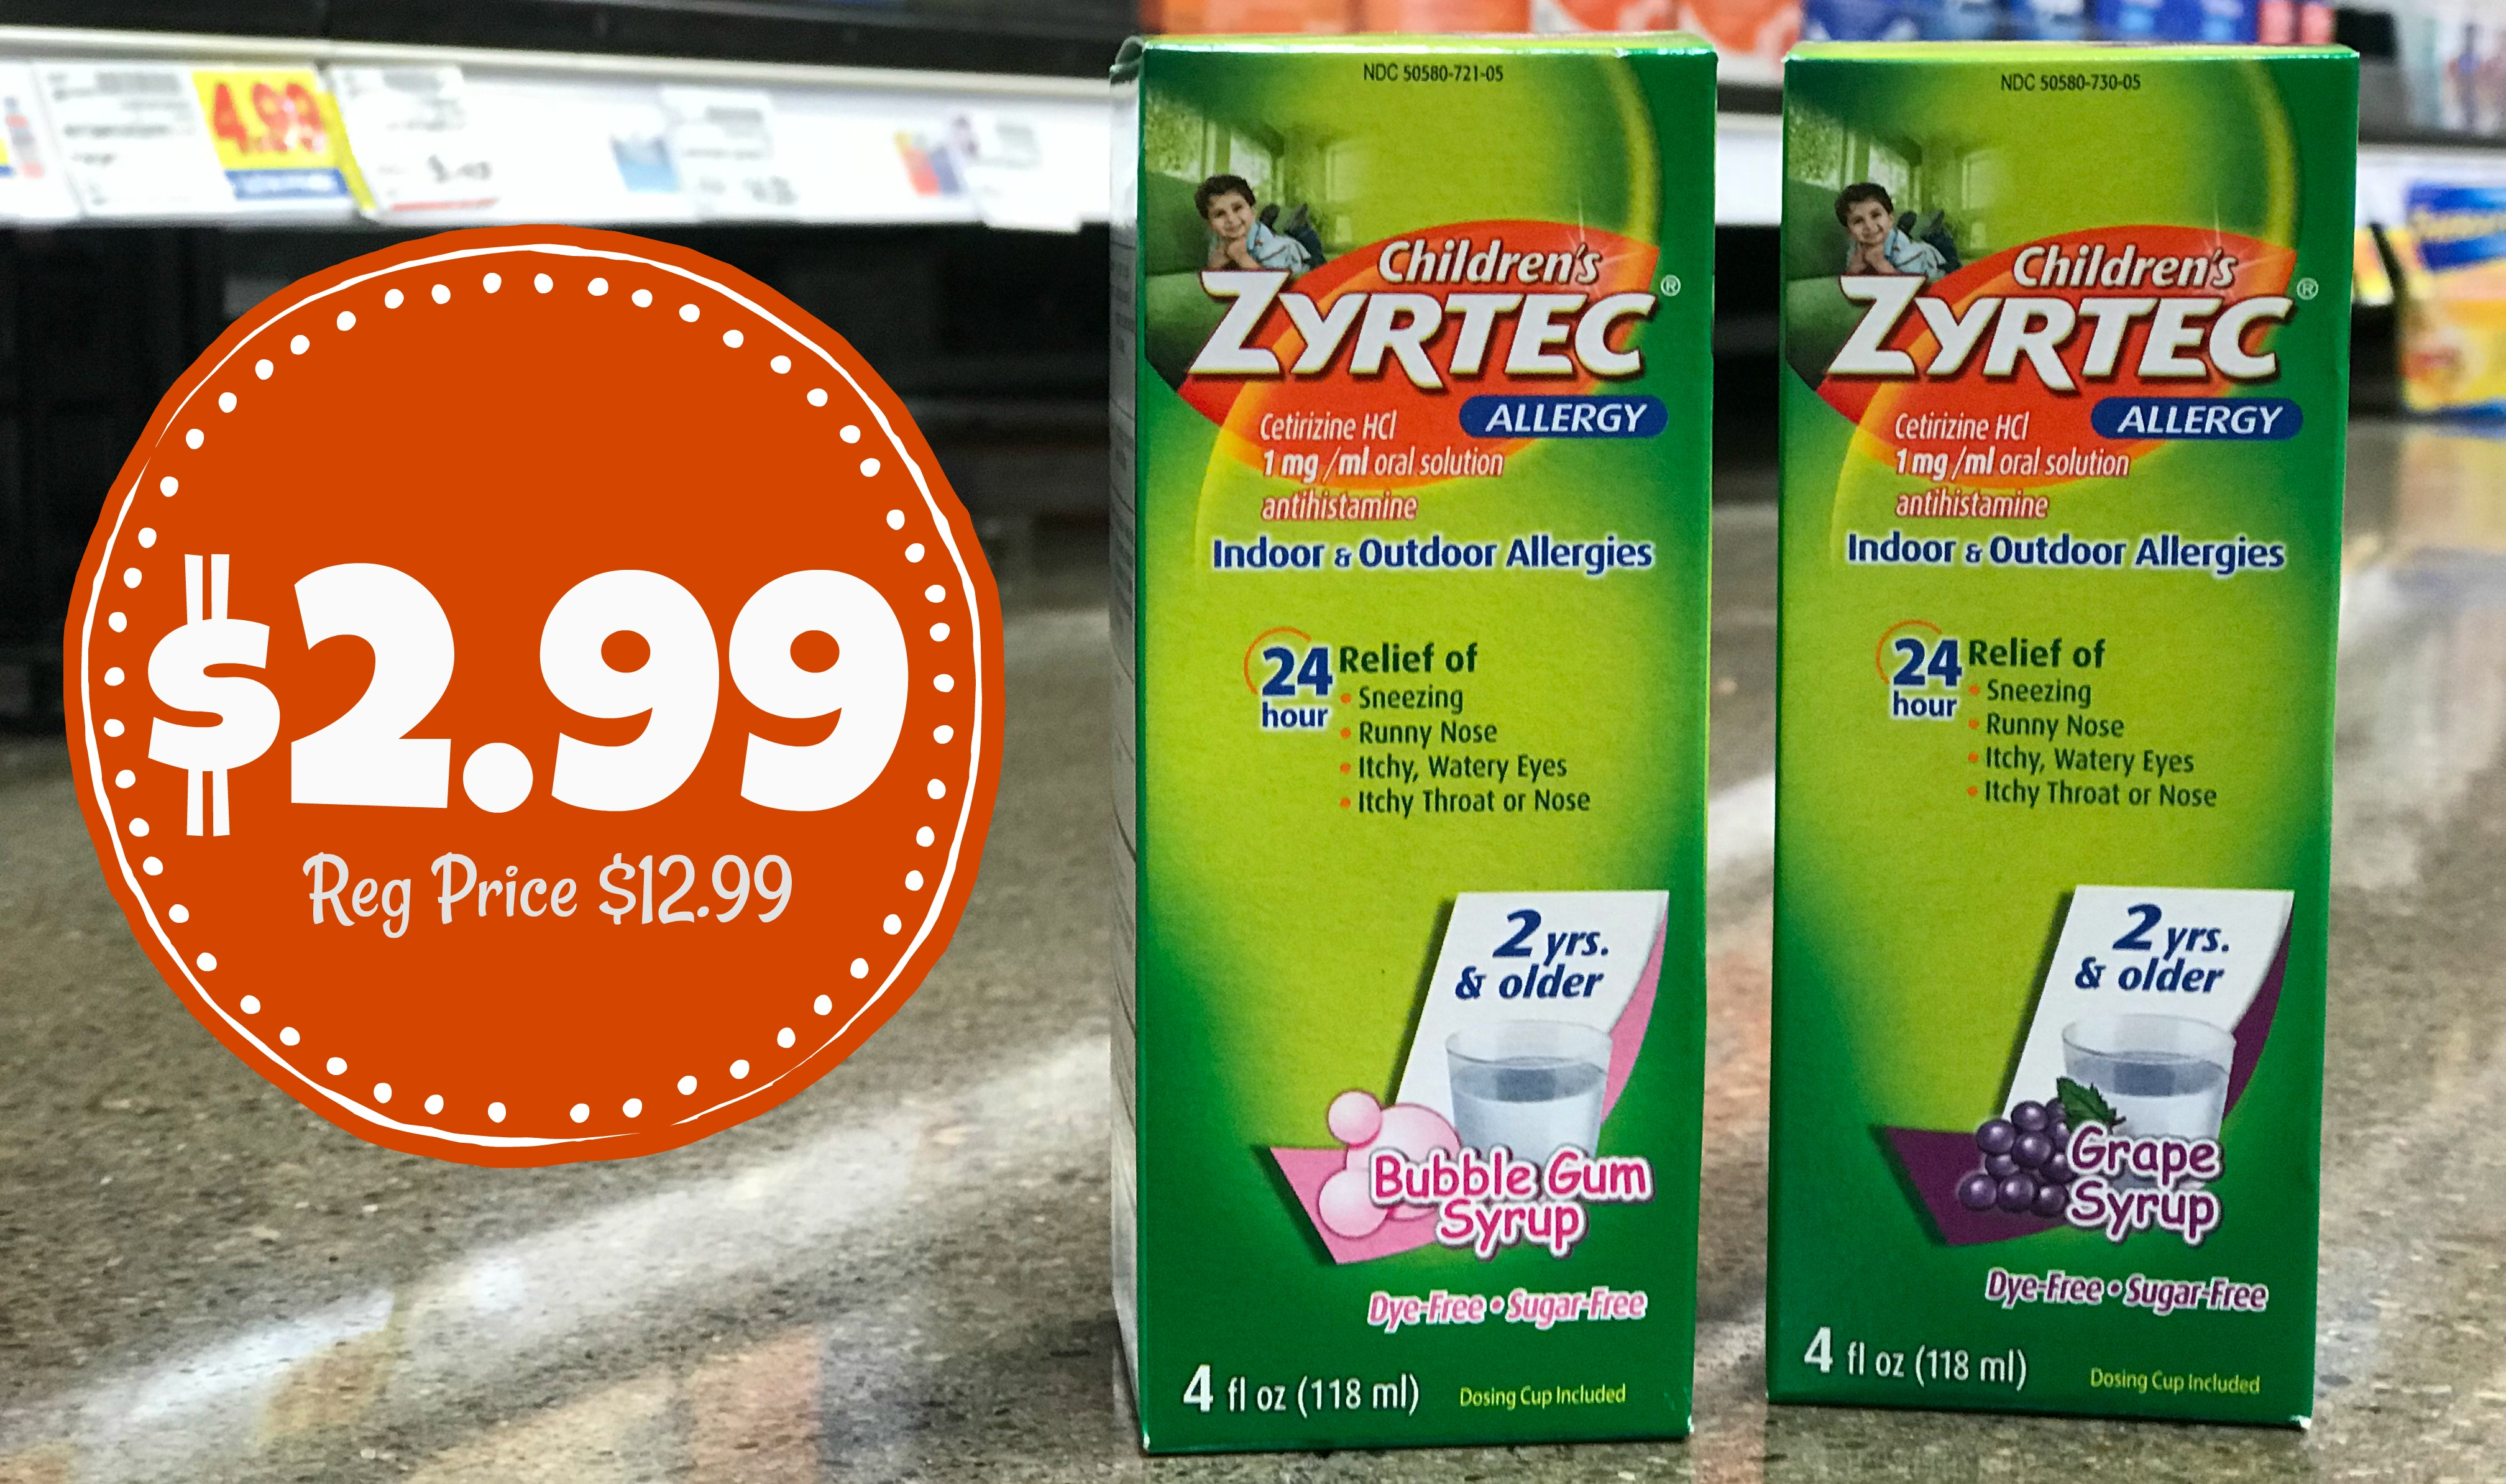 photo relating to Zyrtec Printable Coupon identified as Refreshing $4.00 Zyrtec Coupon Childrens Allergy Meds as reduced as